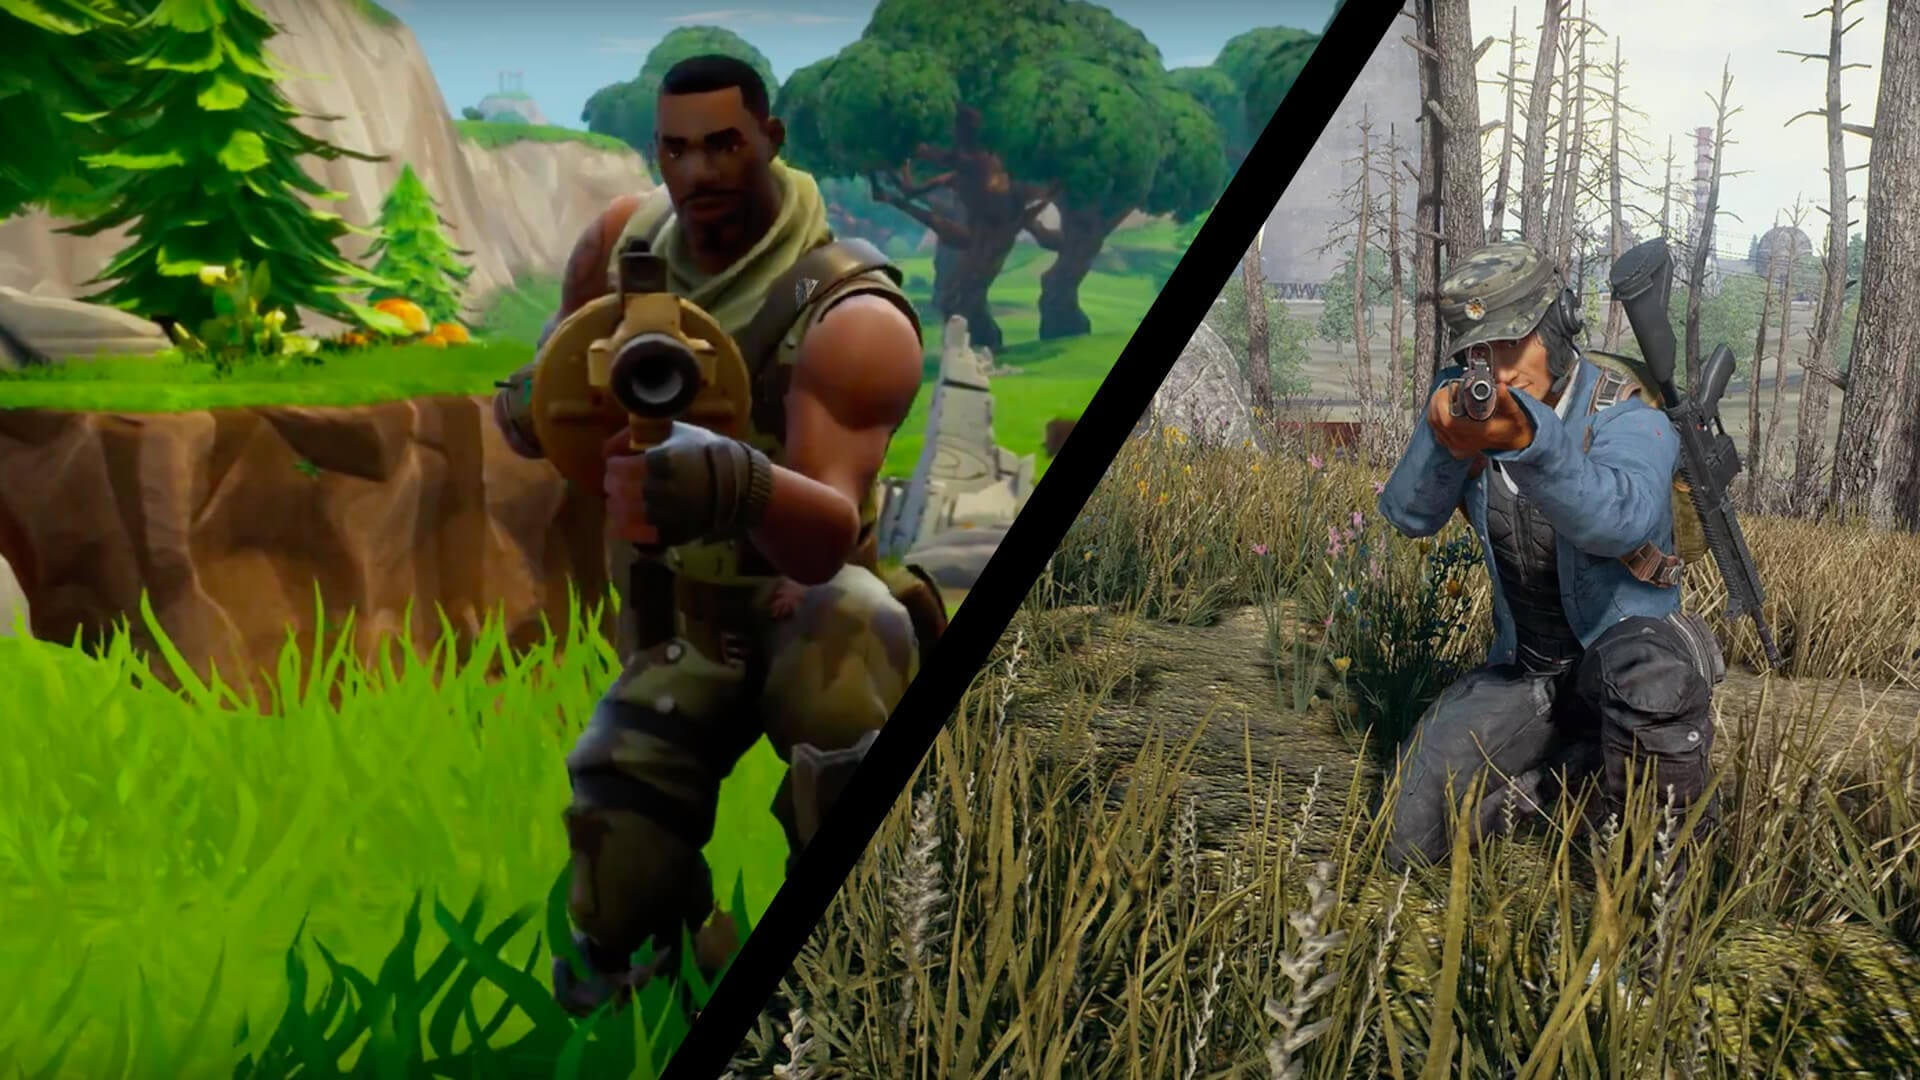 Pubg Hd Graphics Images: PUBG Vs Fortnite: Who Wins? - Here's What We Think